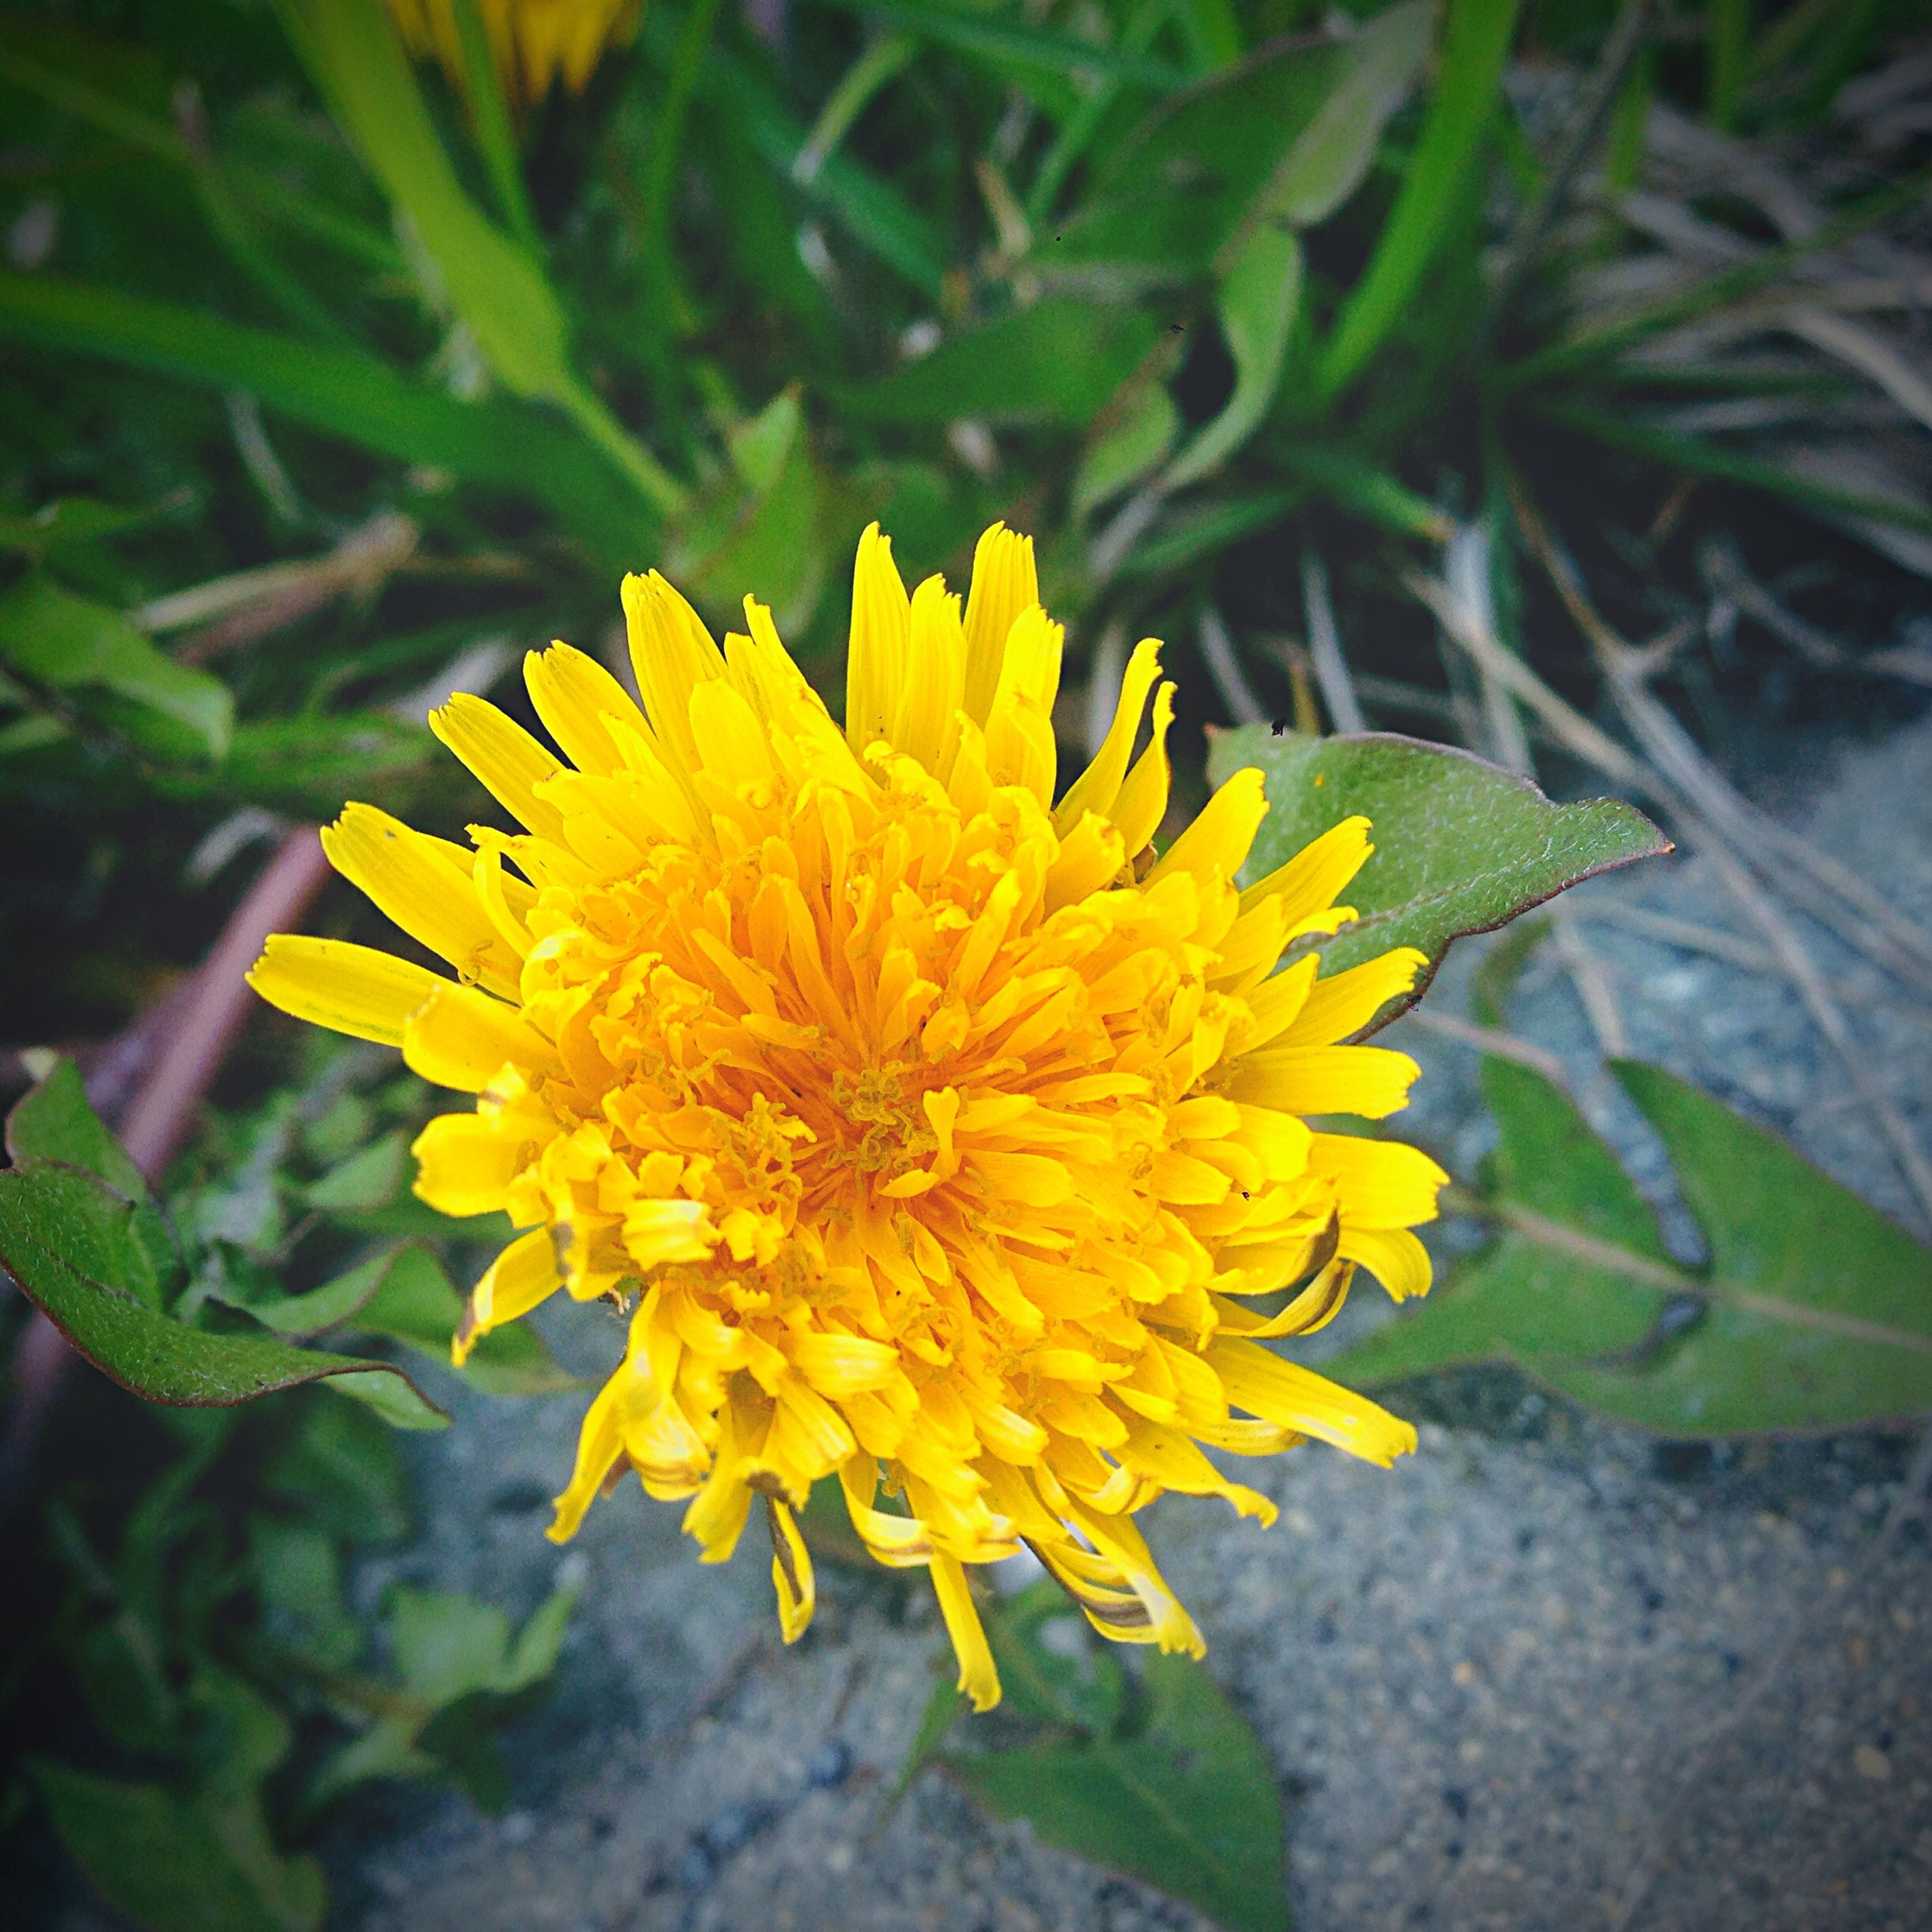 flower, yellow, petal, freshness, flower head, fragility, growth, beauty in nature, single flower, blooming, close-up, plant, nature, focus on foreground, pollen, in bloom, high angle view, leaf, outdoors, day